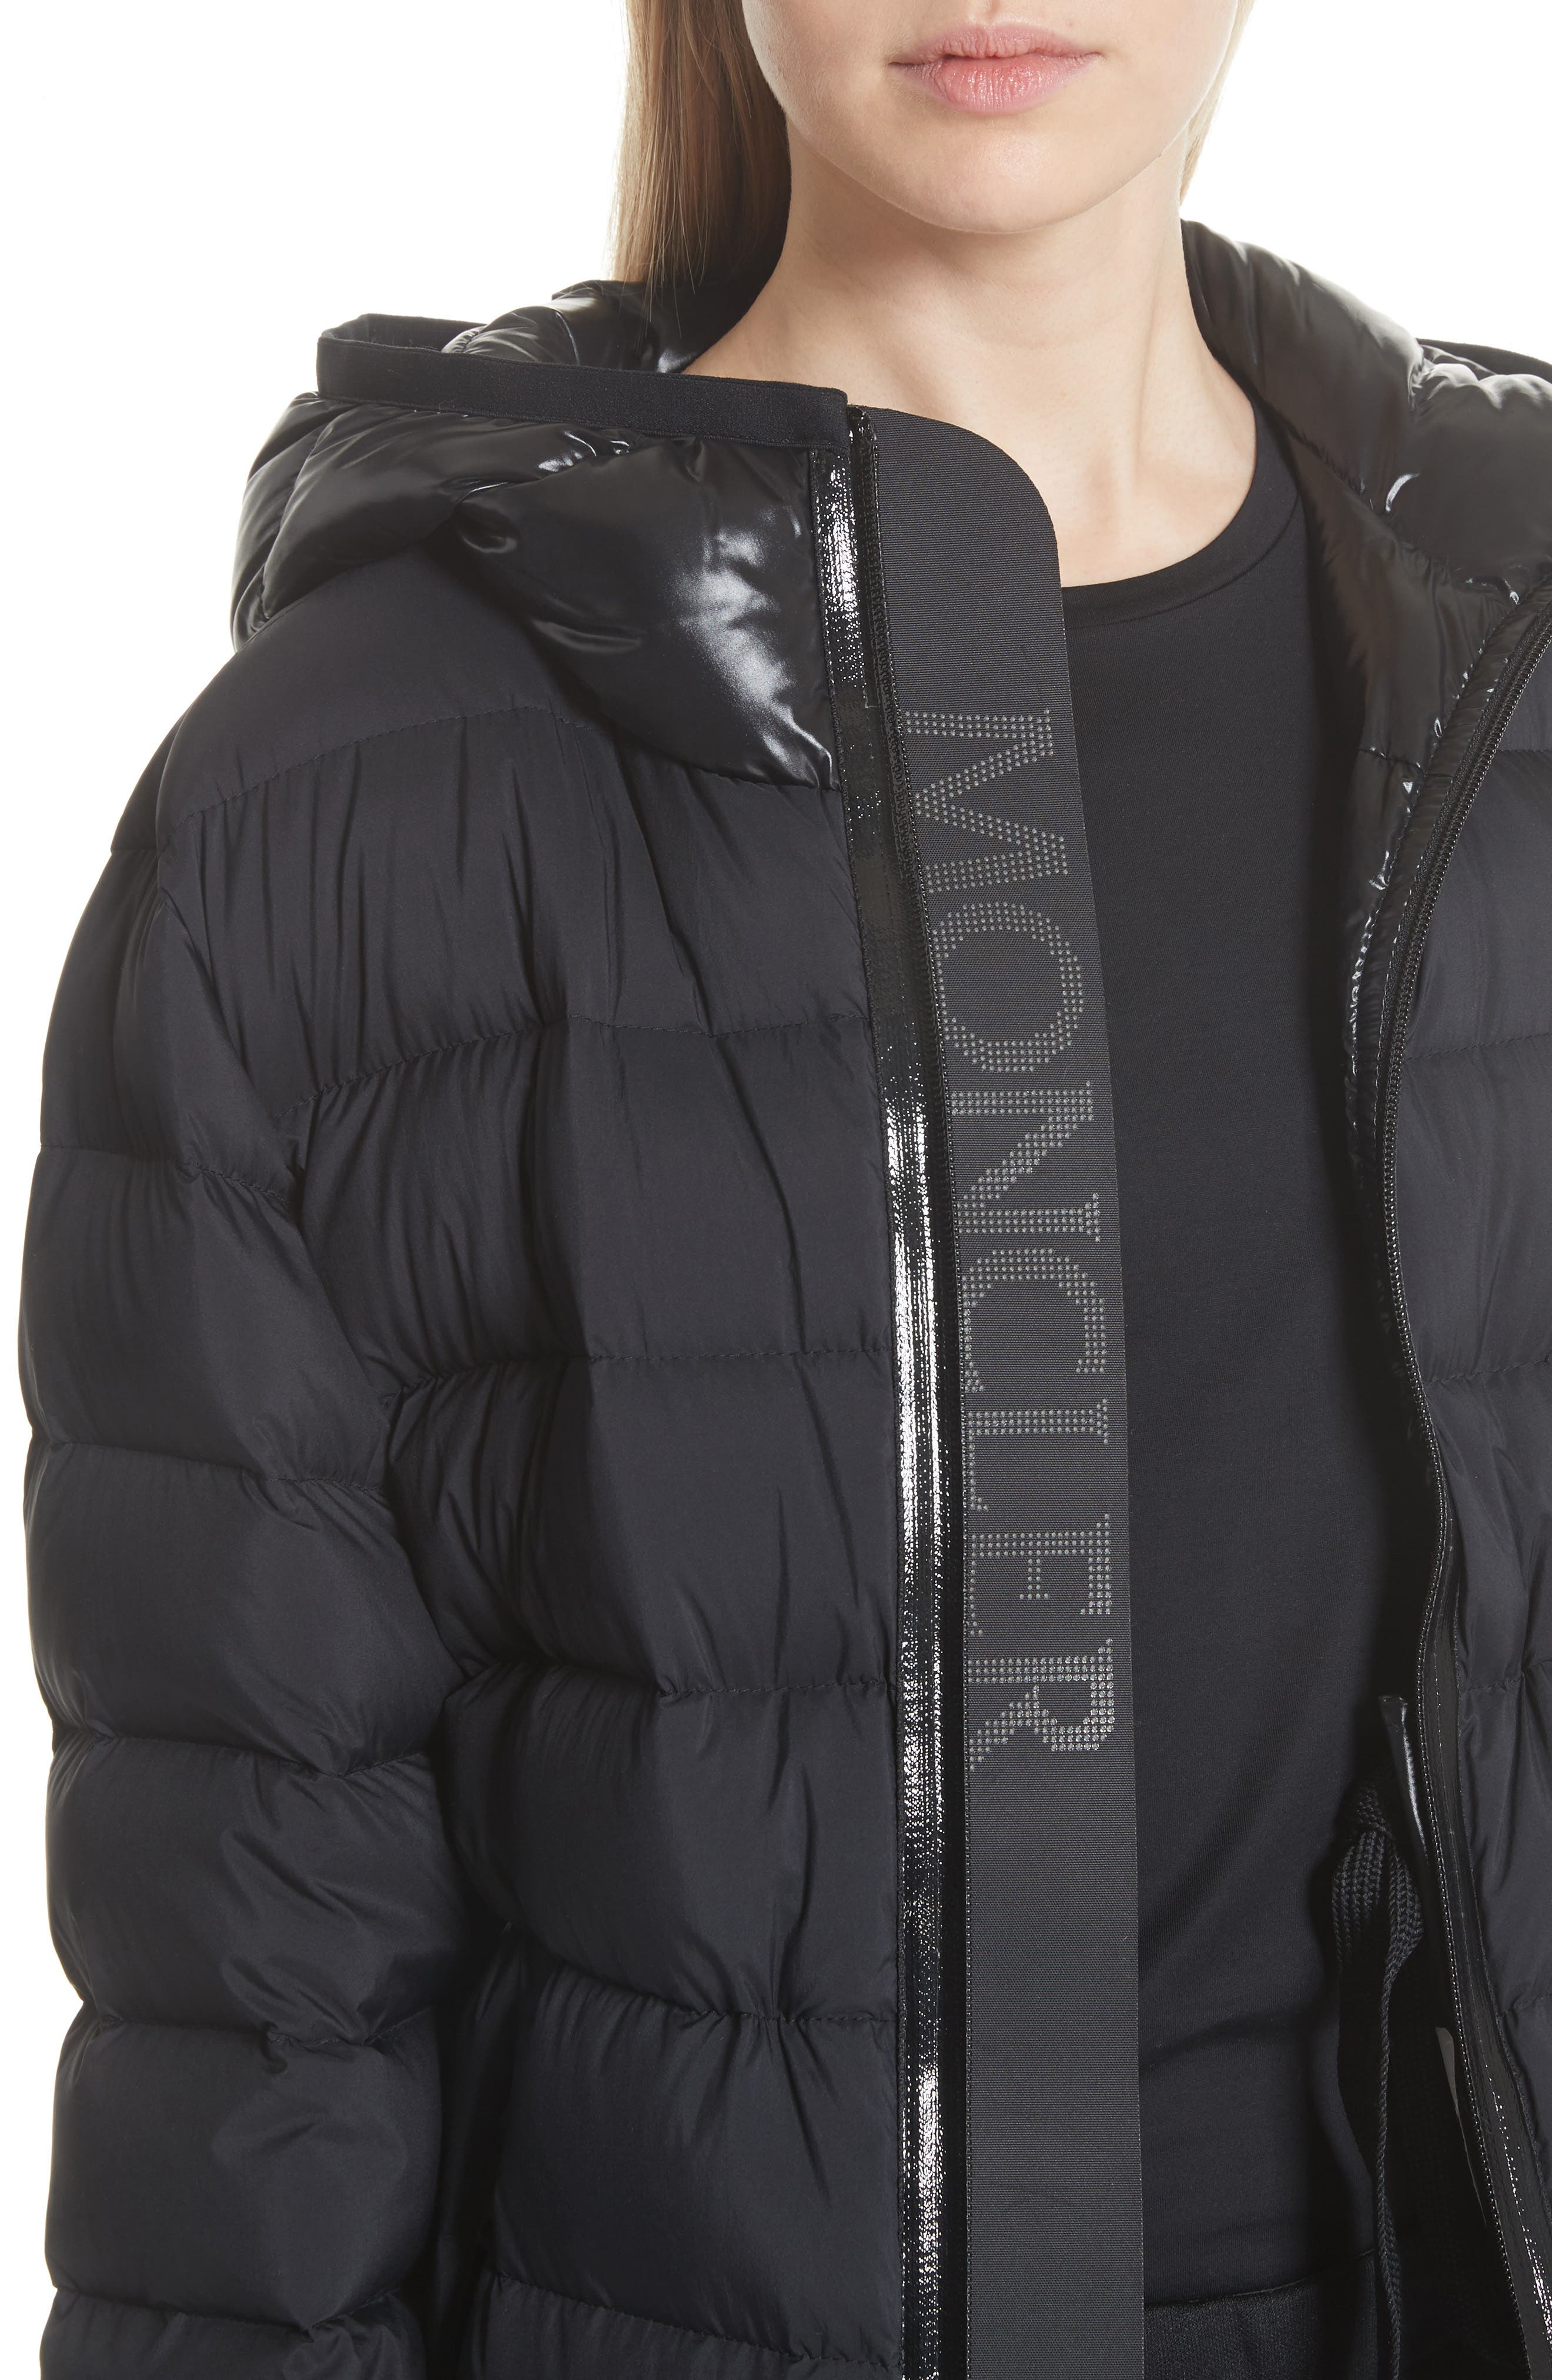 MONCLER, Goeland Quilted Down Jacket, Alternate thumbnail 2, color, 001